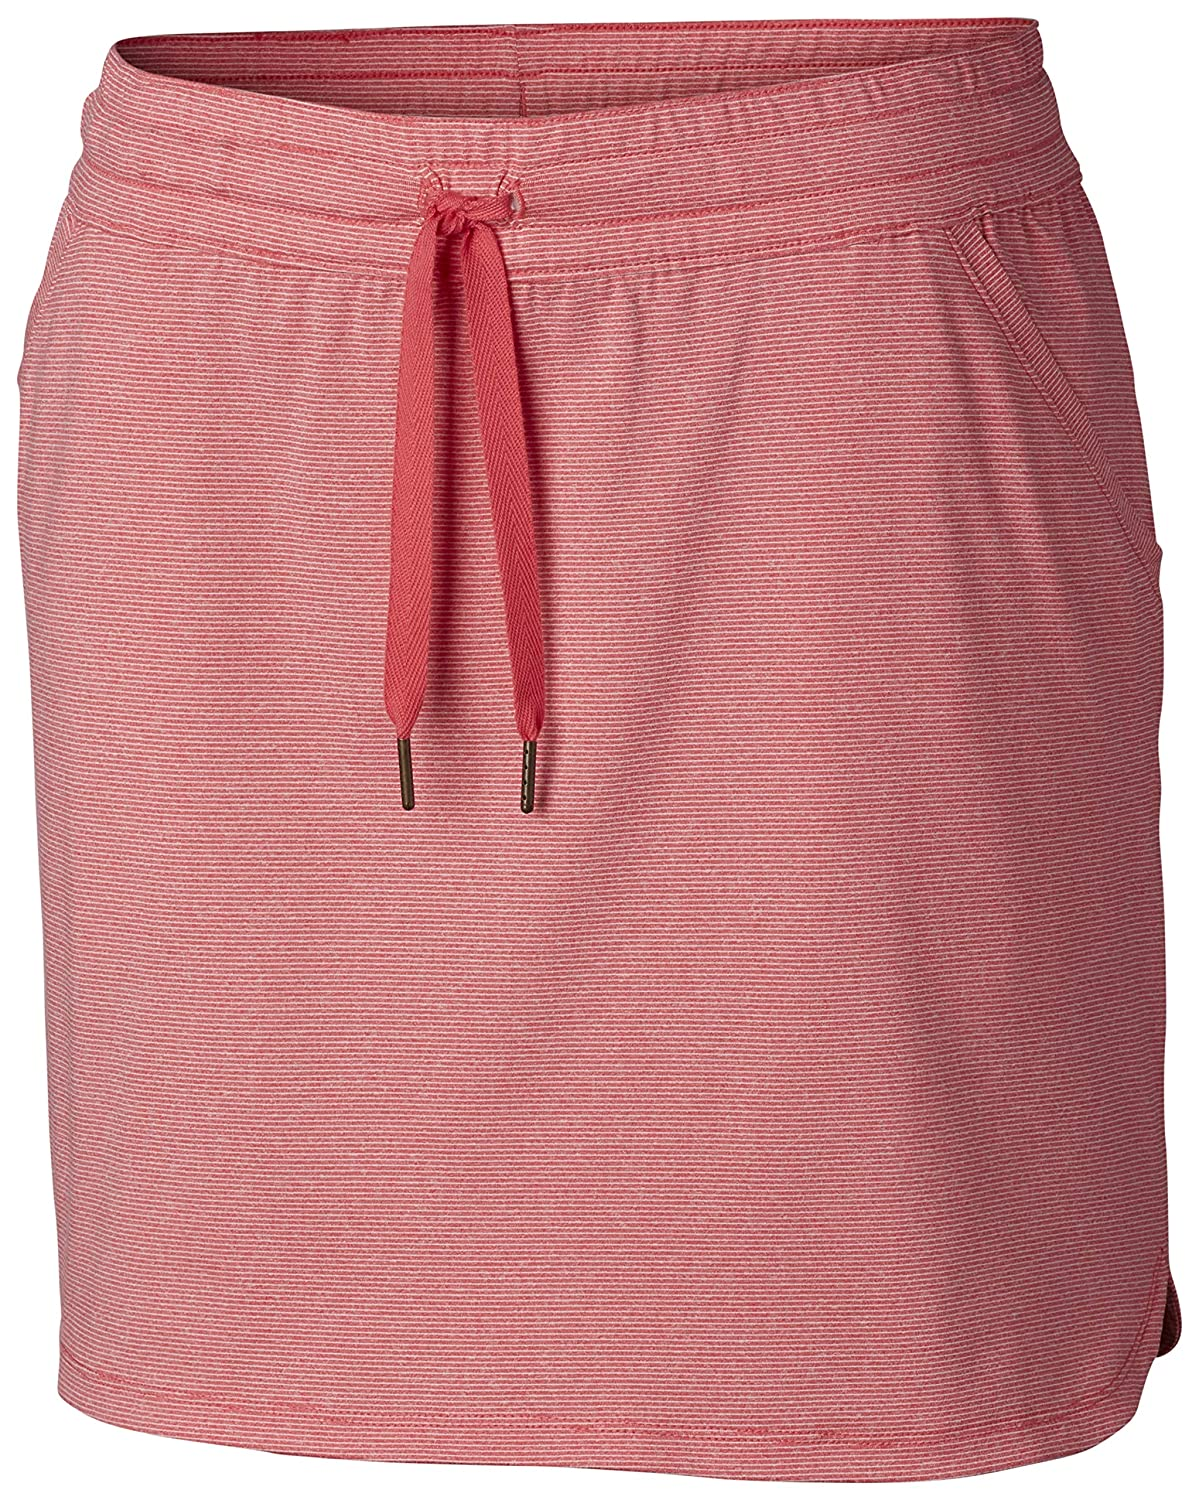 Columbia Reel Relaxed Skirt